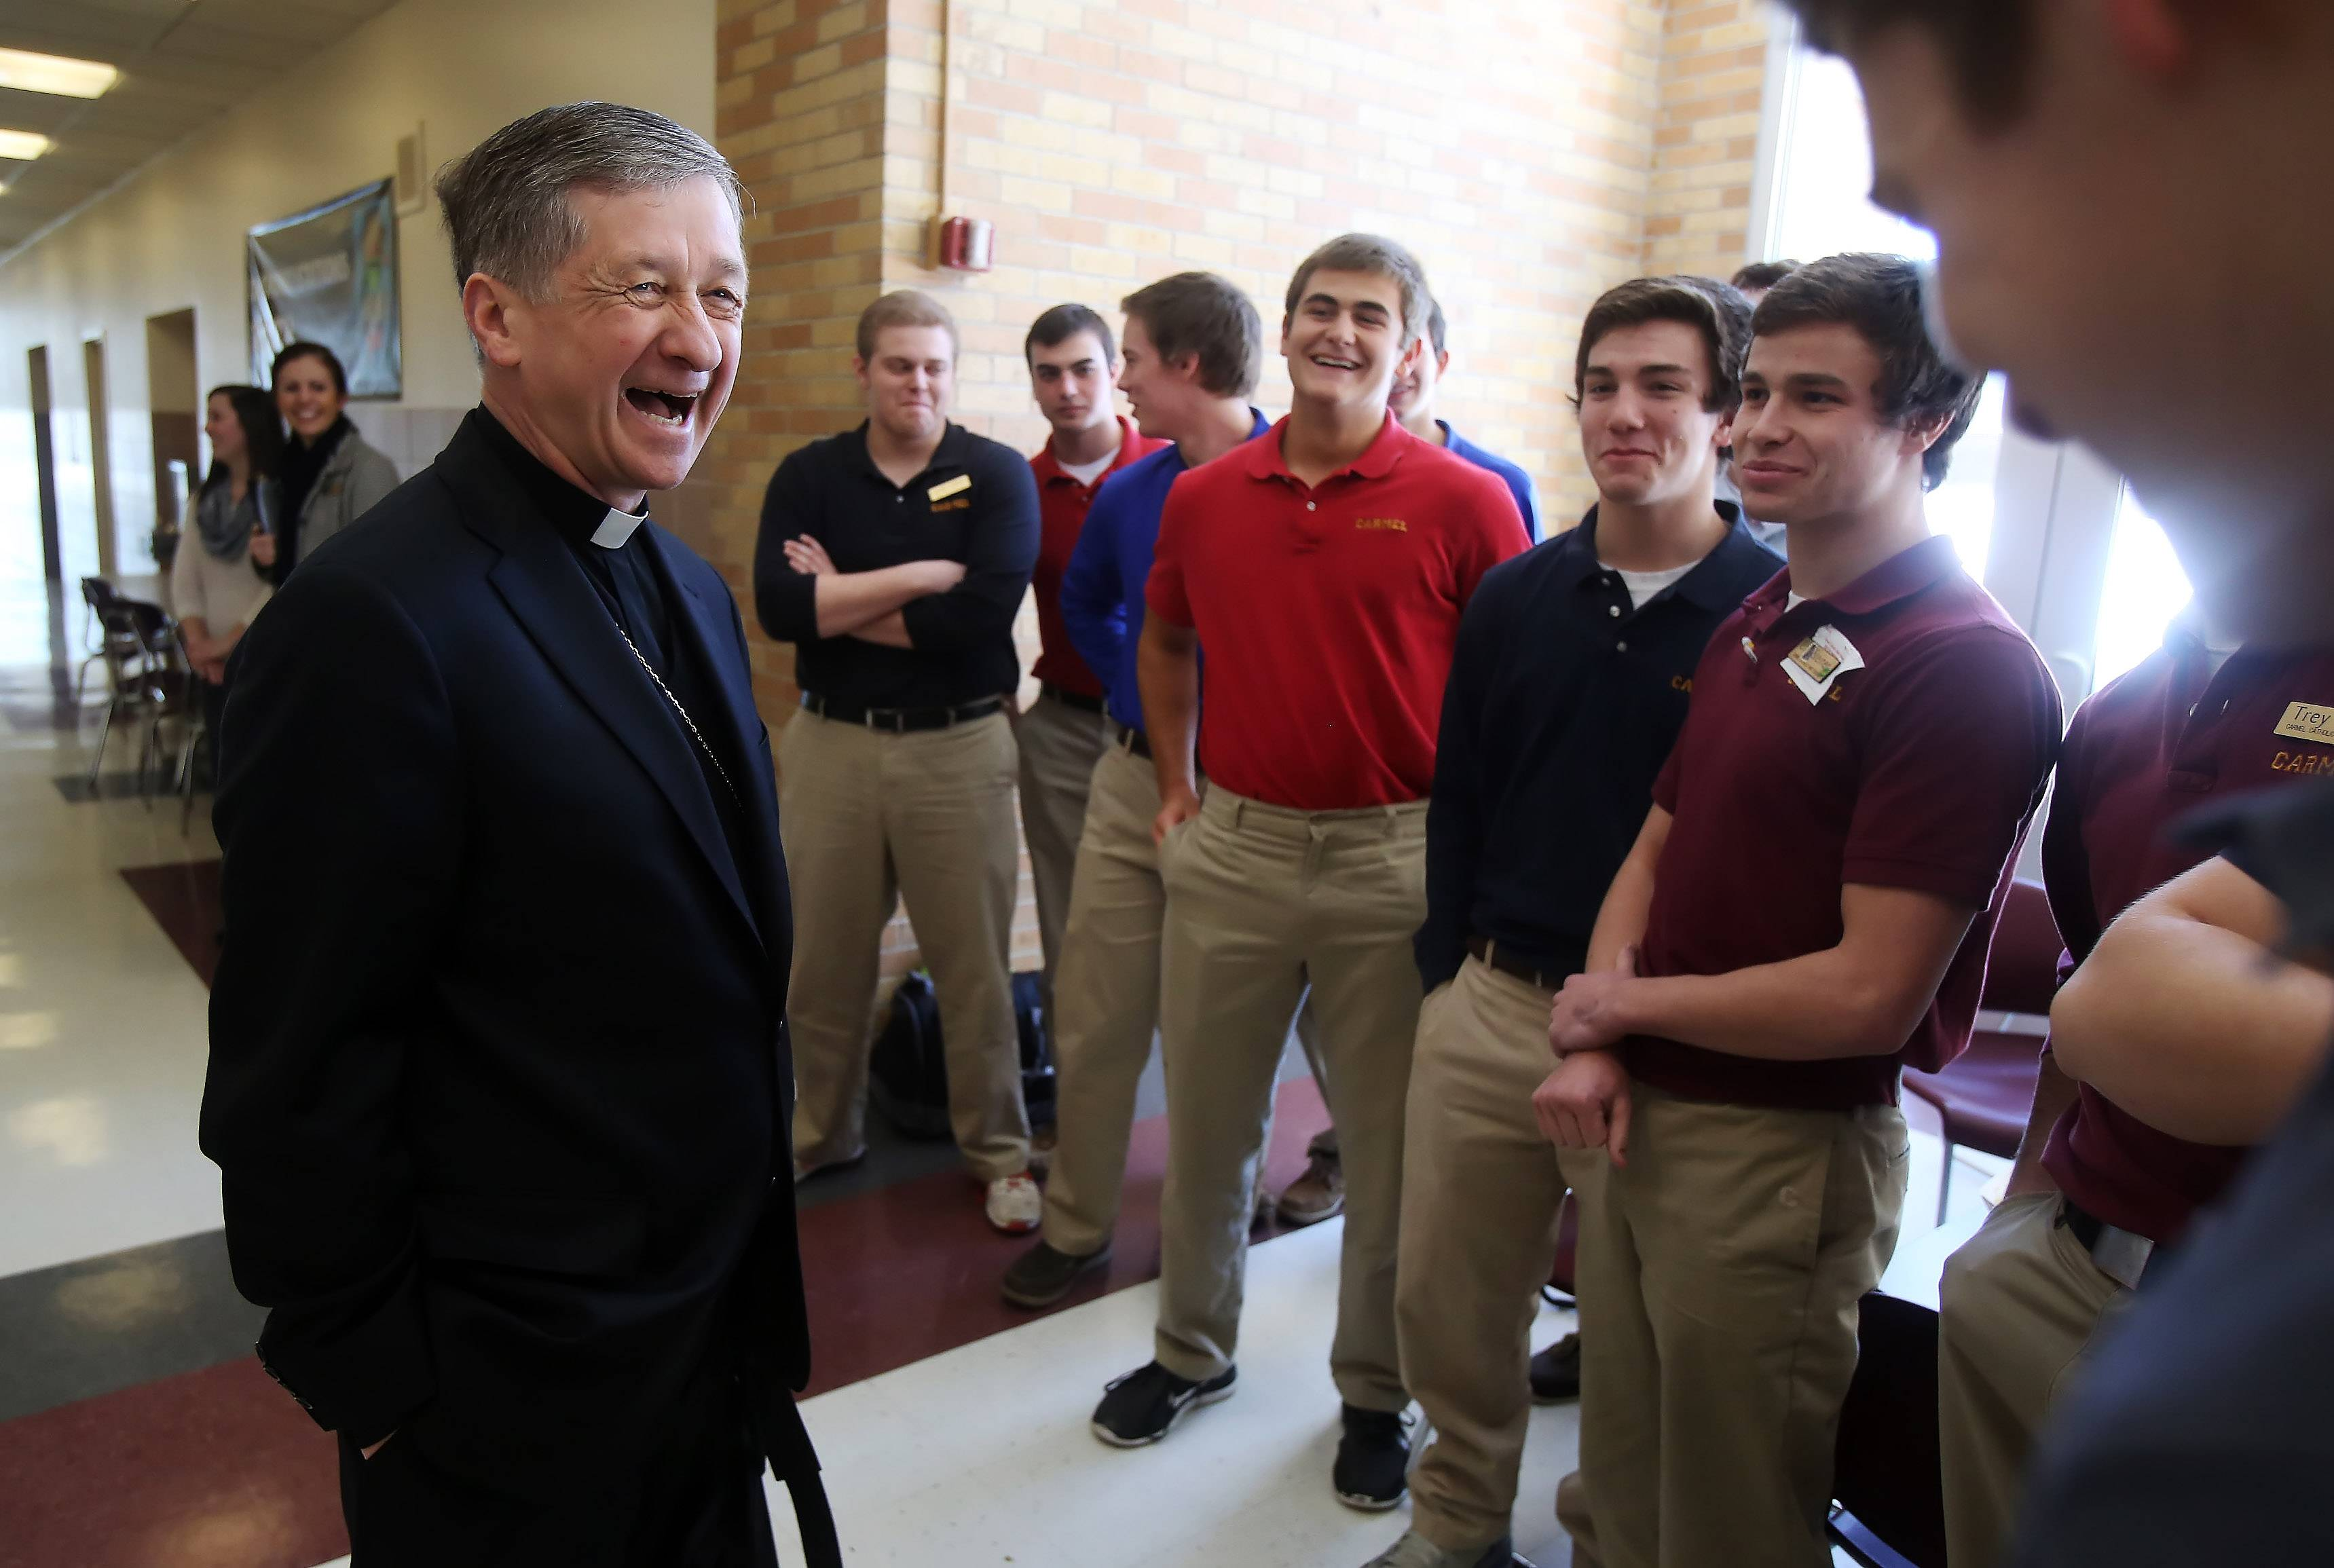 Chicago Archbishop Blase Cupich shares a laugh with several seniors during his tour of Carmel Catholic High School in Mundelein. Cupich stopped in classrooms, ate lunch with students and talked with teachers and employees during his hourlong visit Thursday.